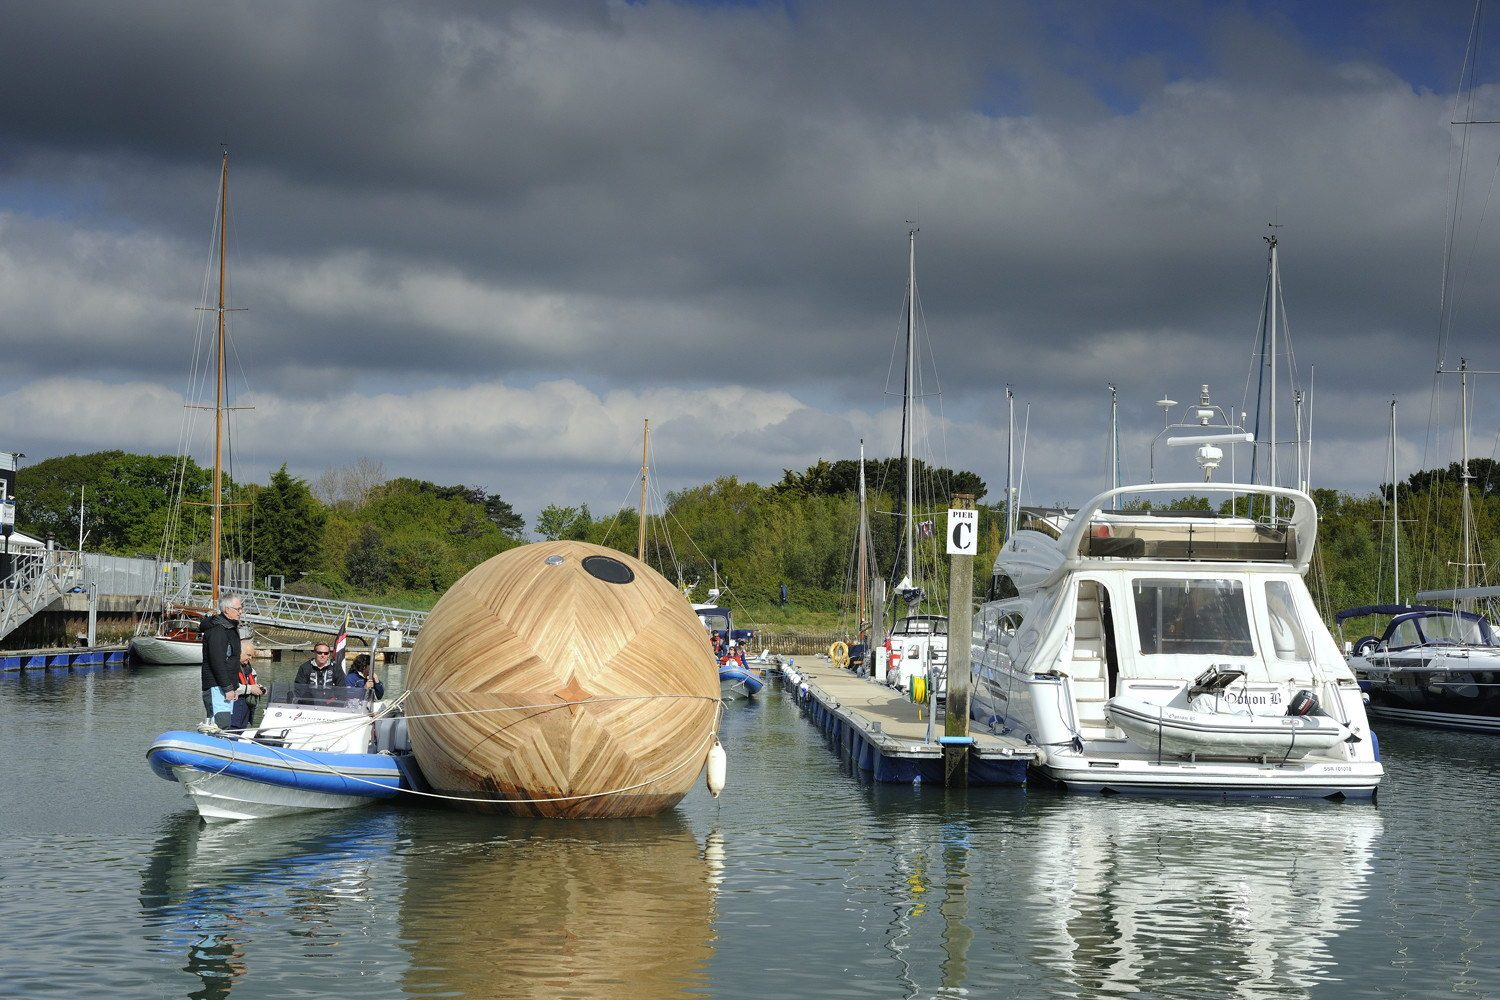 The Exbury Egg – Floating Off-Grid Home